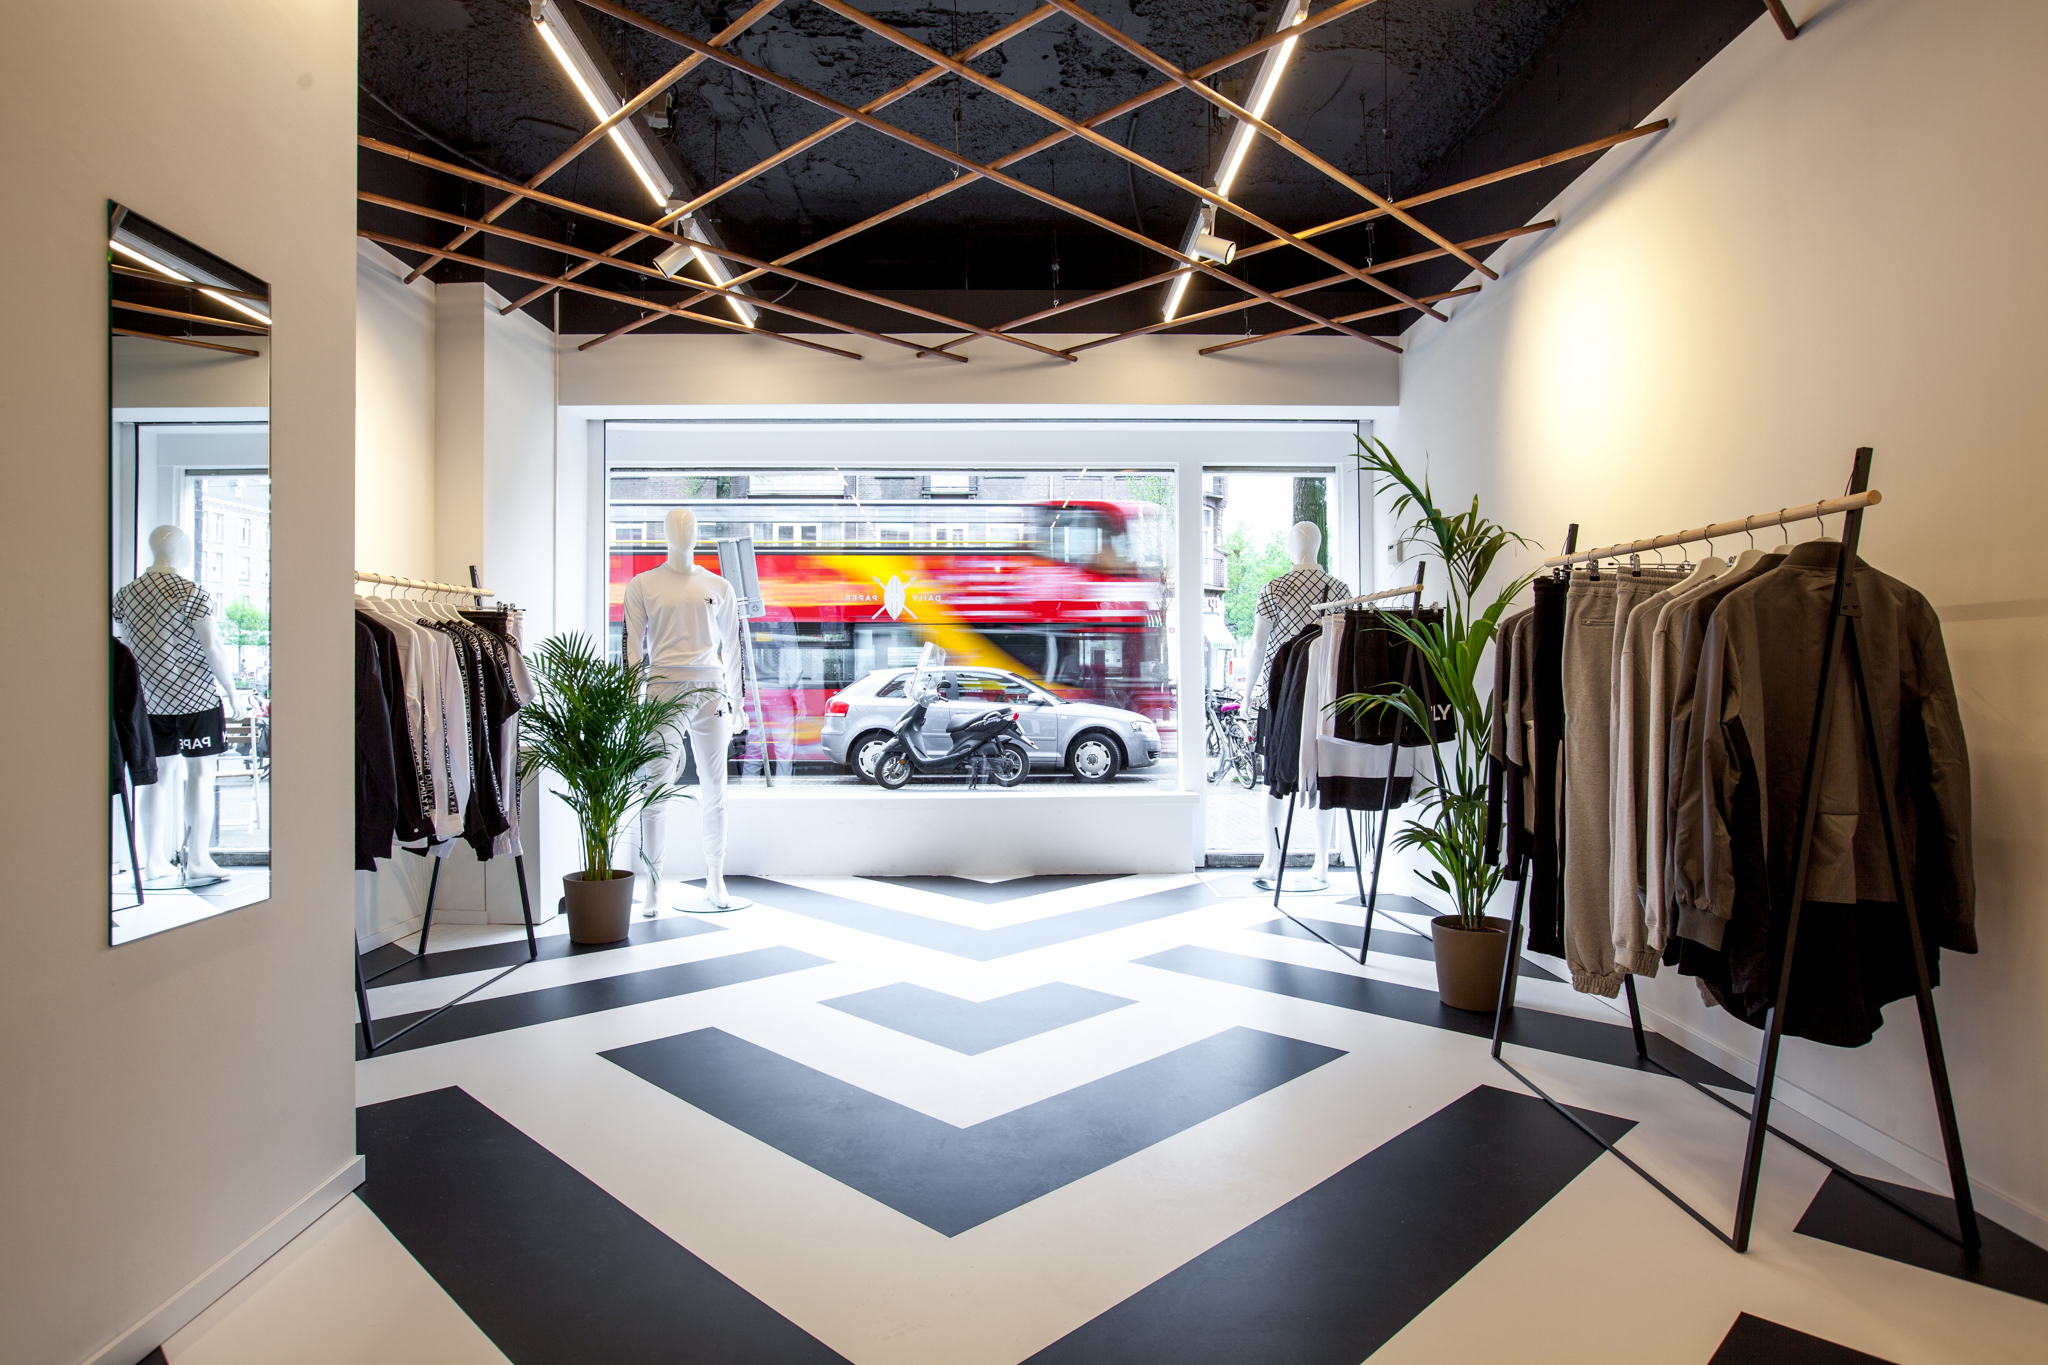 Daily Paper Opens First Store With Inspirations From the West African Kingdom of Dagbon